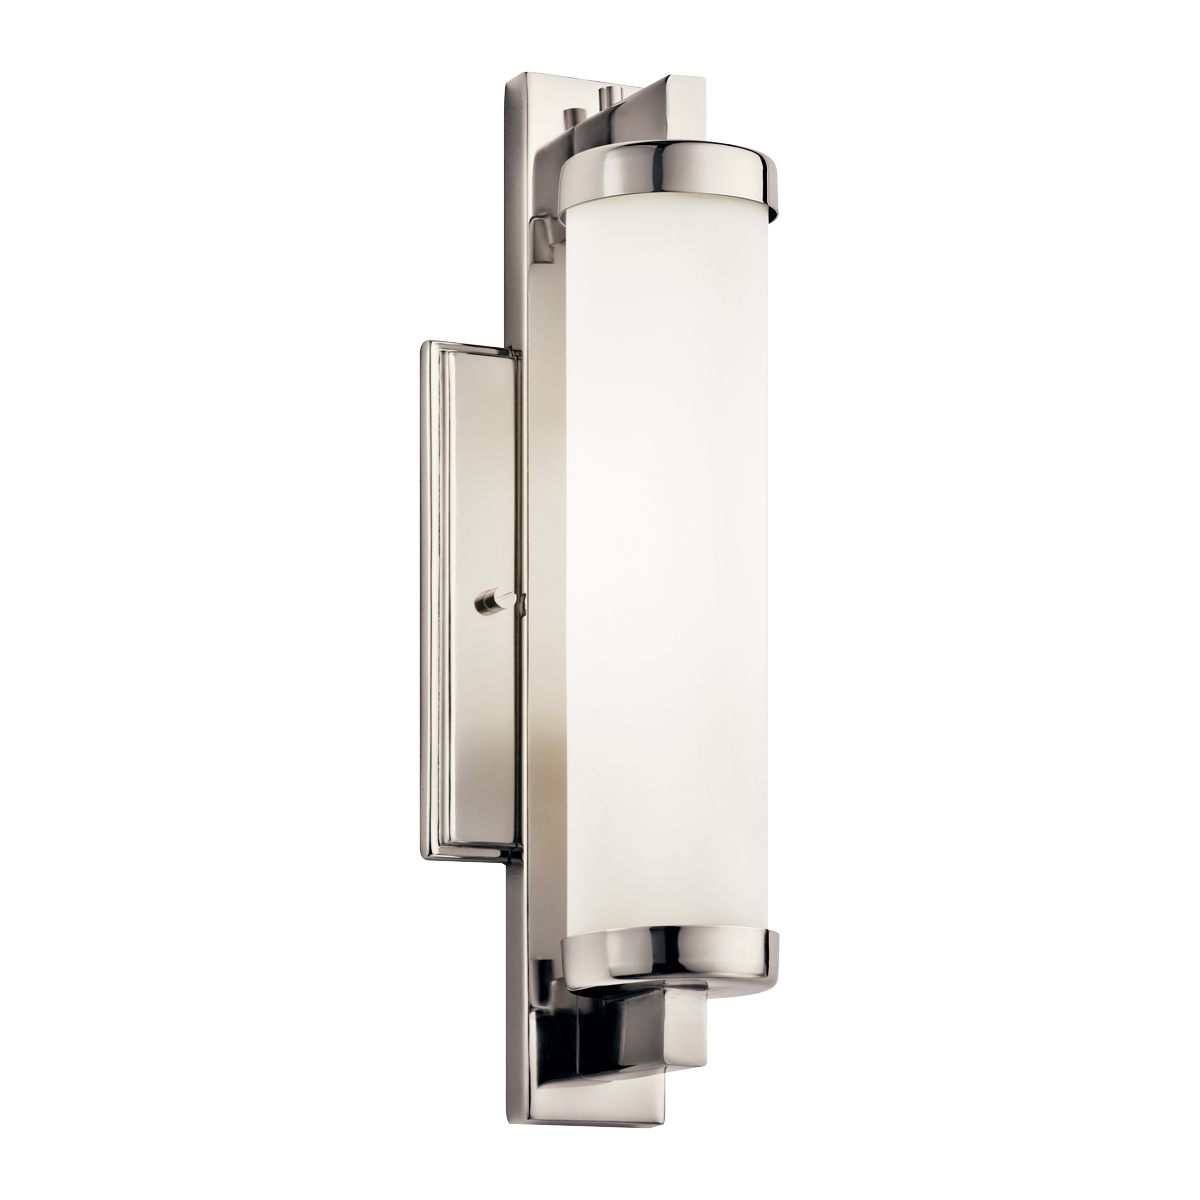 Jervis Light Fluorescent Wall Sconce In Polished Chrome - Bathroom wall sconces polished chrome